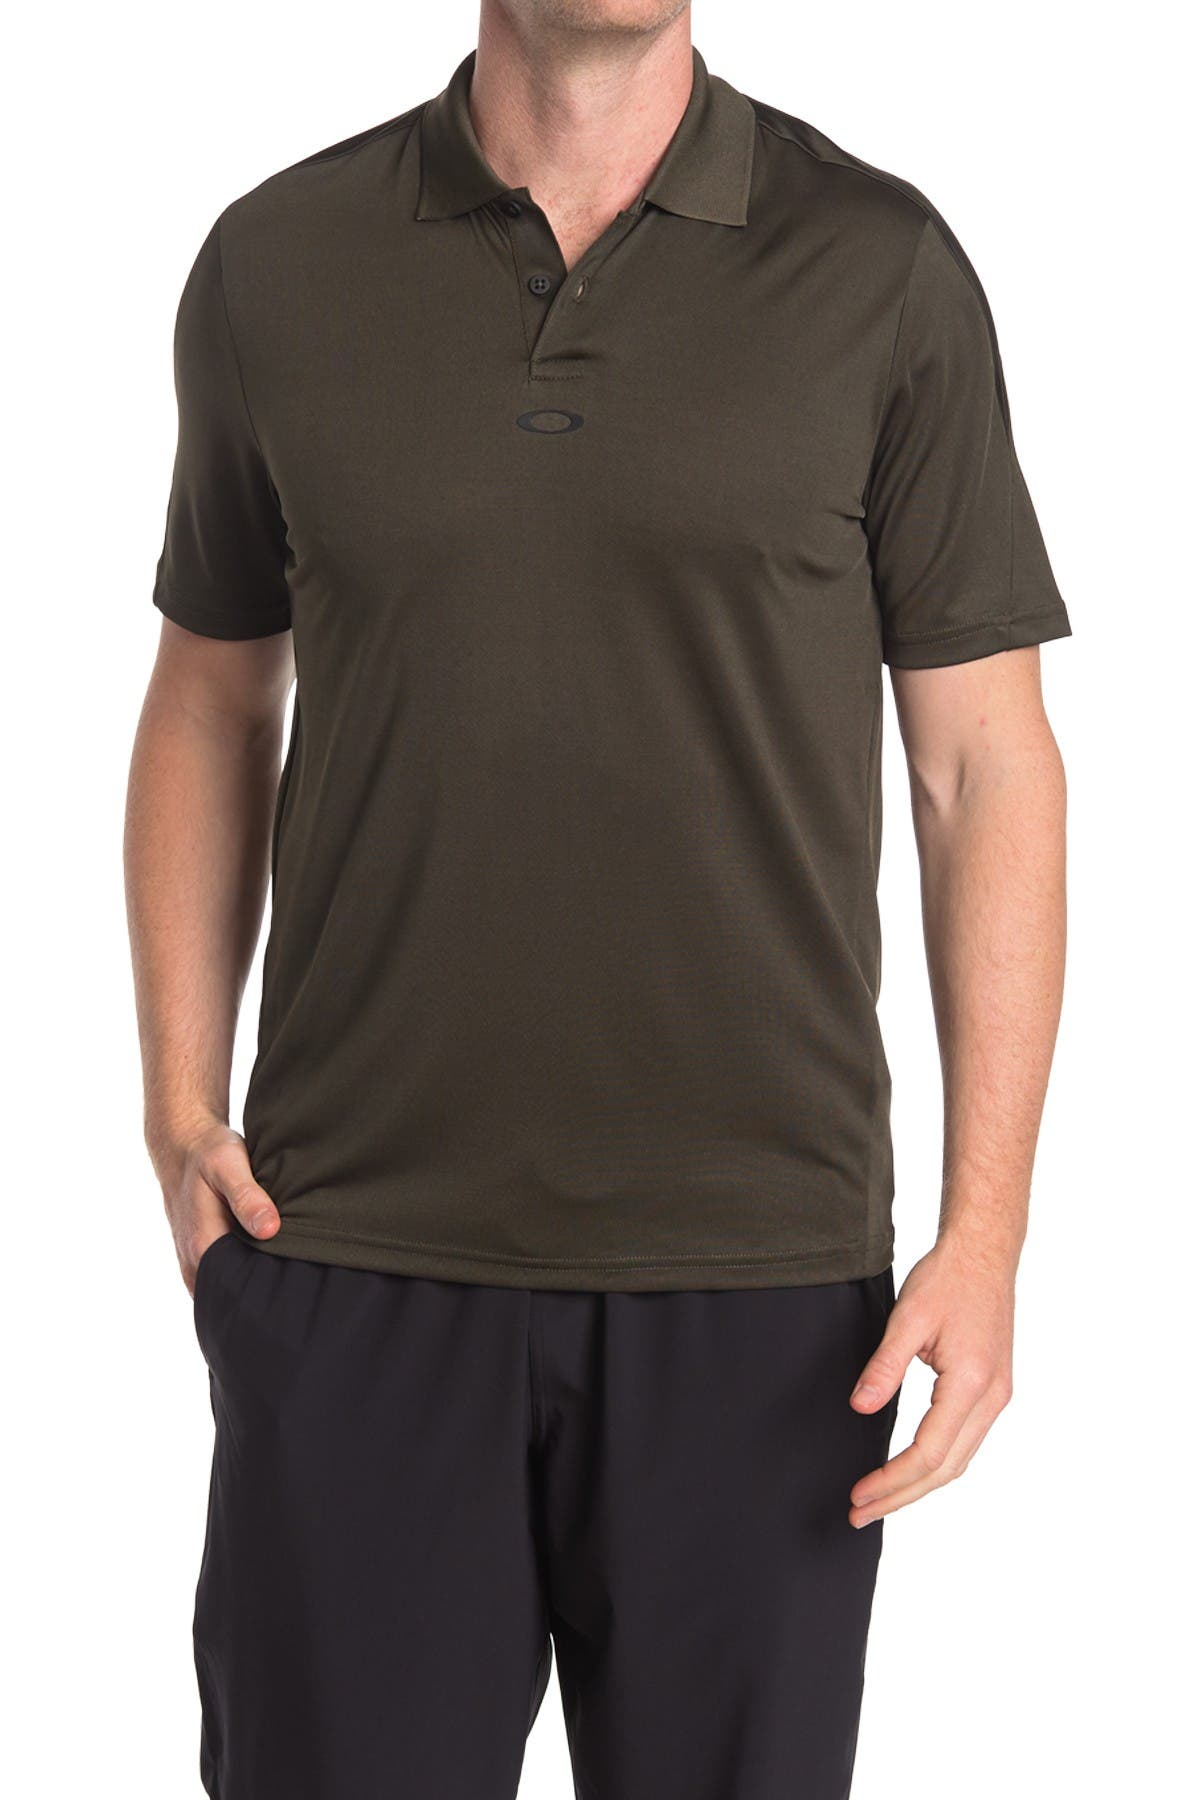 Image of Oakley Ergonomic Golf Short Sleeve Polo